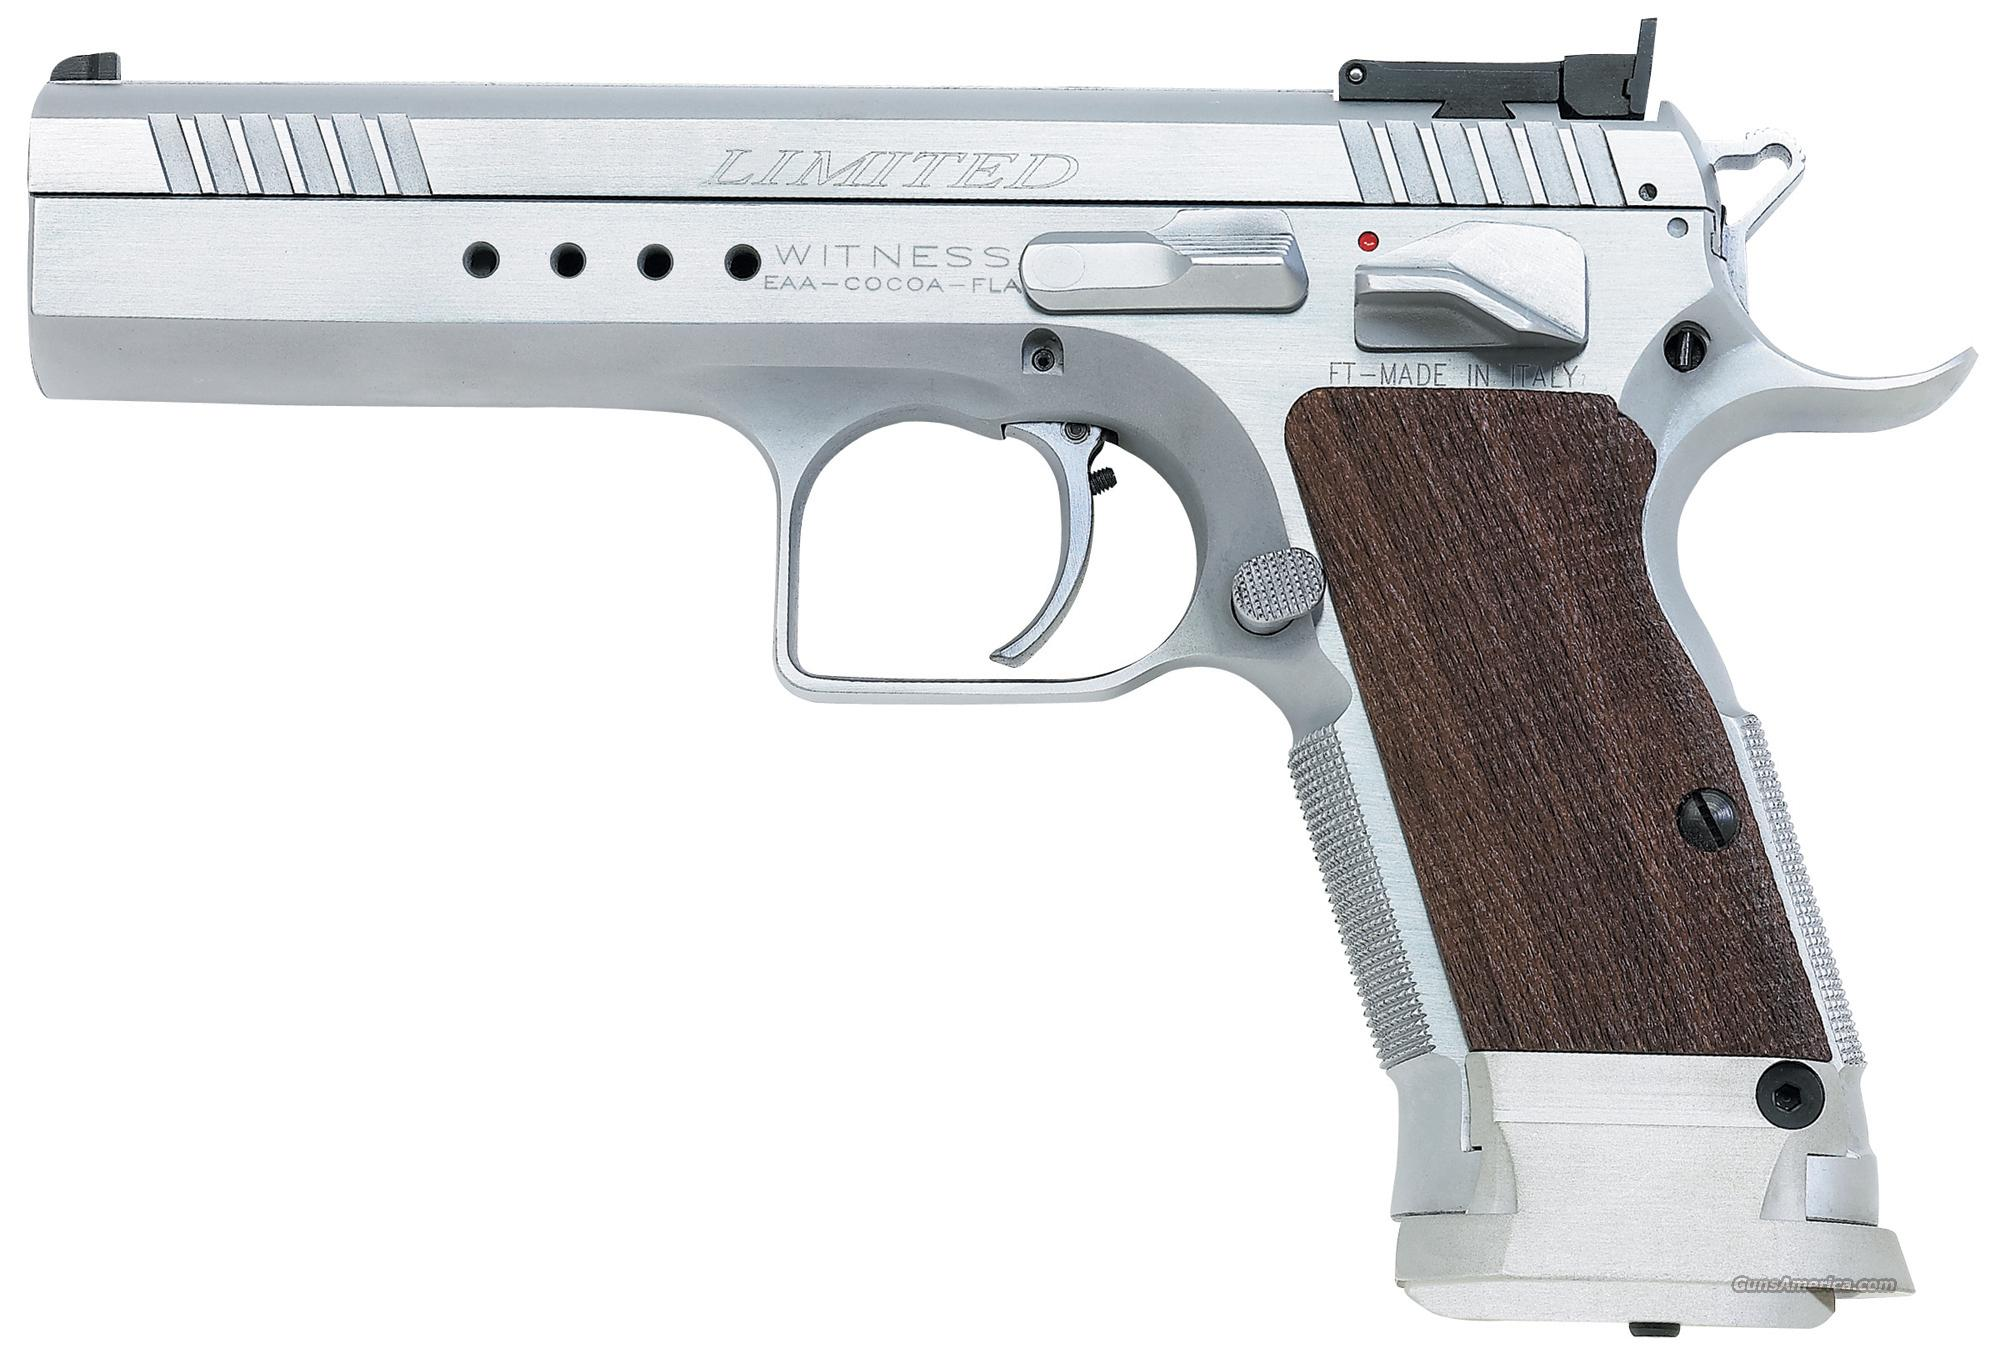 EAA Witness Elite Limited 9mm Hard Chrome 17 Round 600310  Guns > Pistols > EAA Pistols > Other